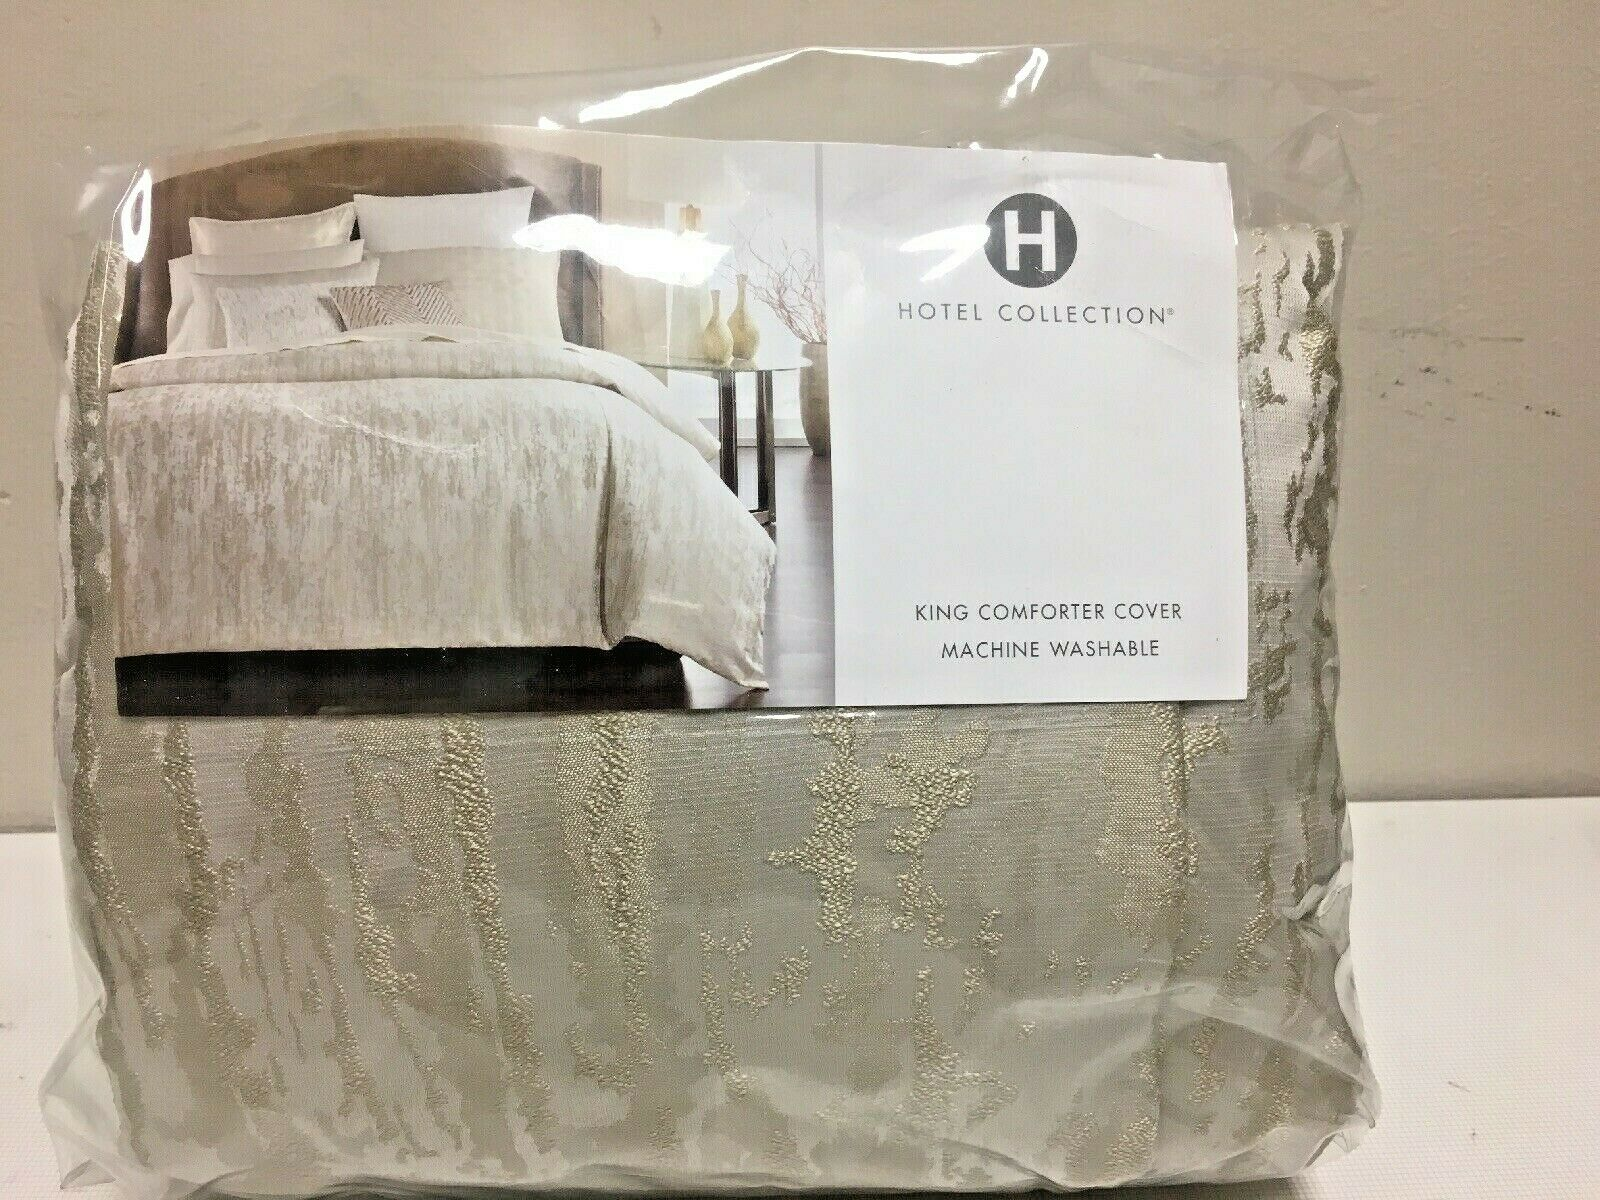 HOTEL COLLECTION Comforter Cover, OPALESCENT, KING, NIP